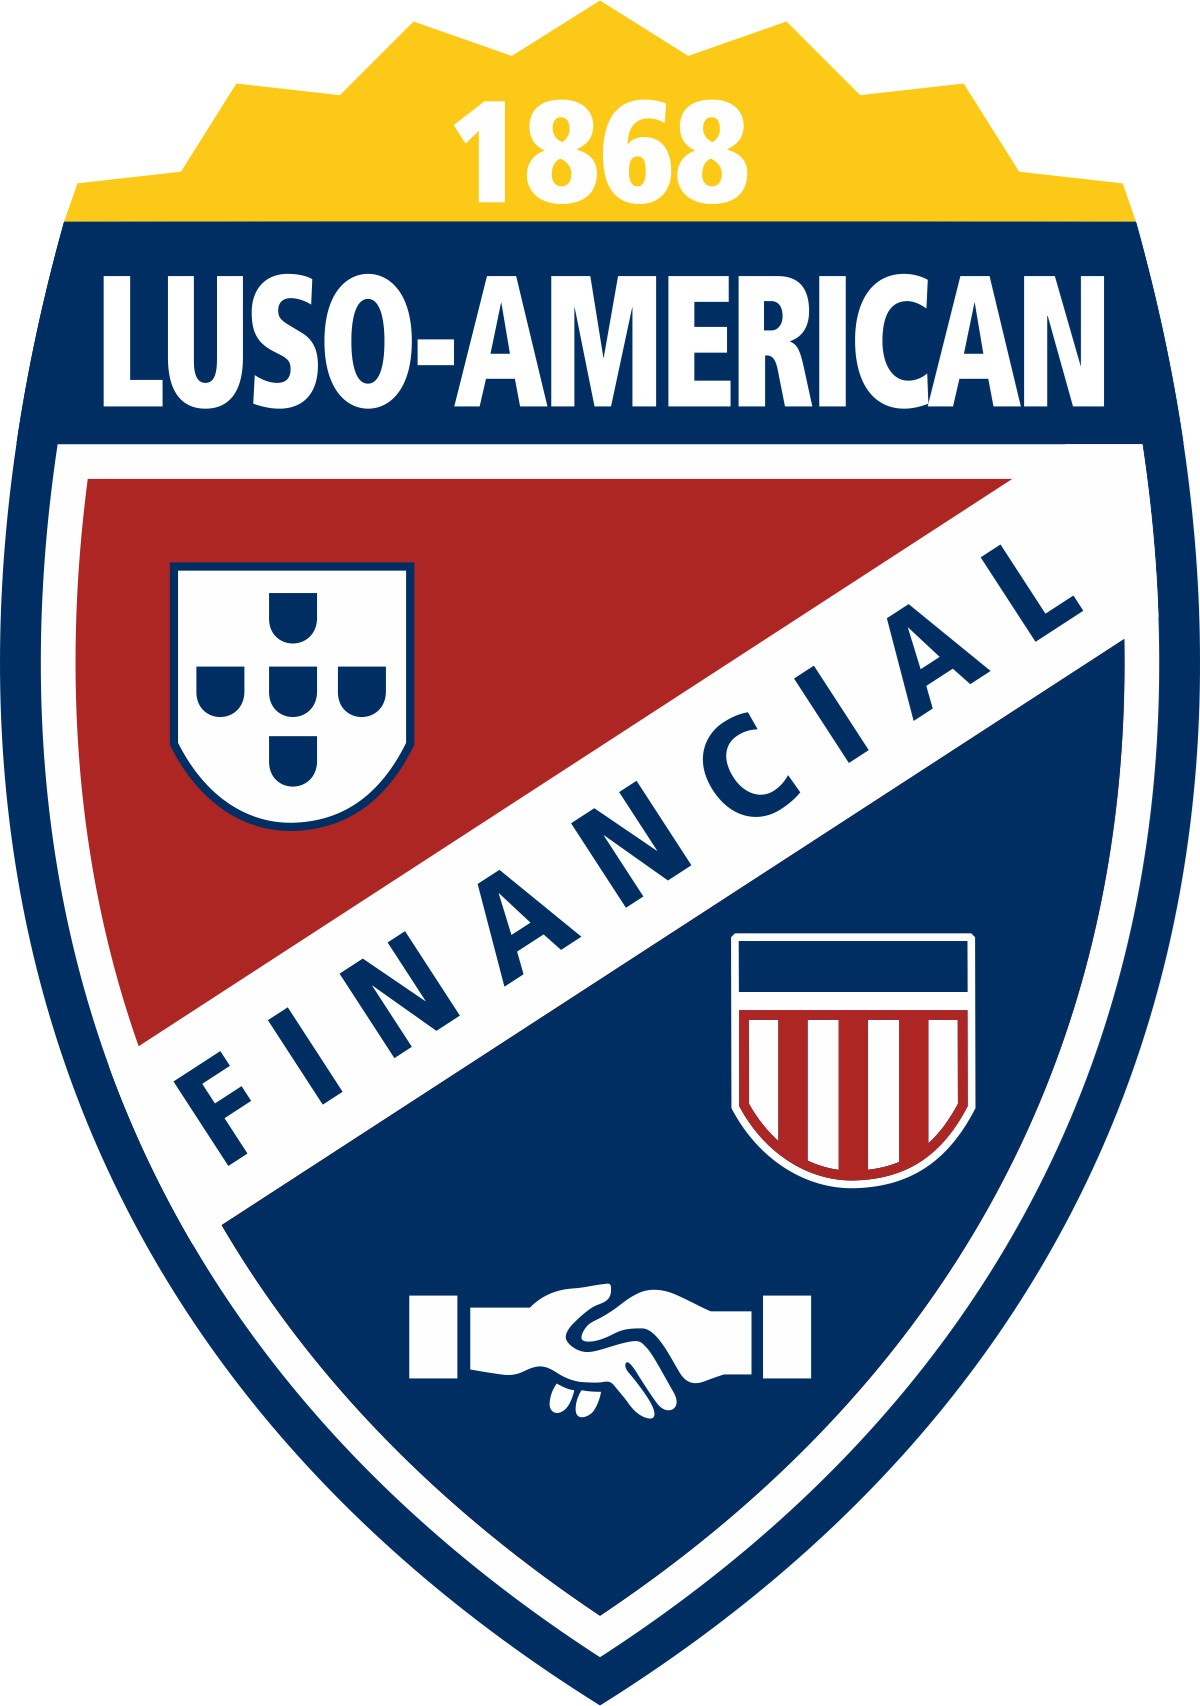 Luso-American Financial: a fraternal provider of affordable and competitive financial protection and retirement options.